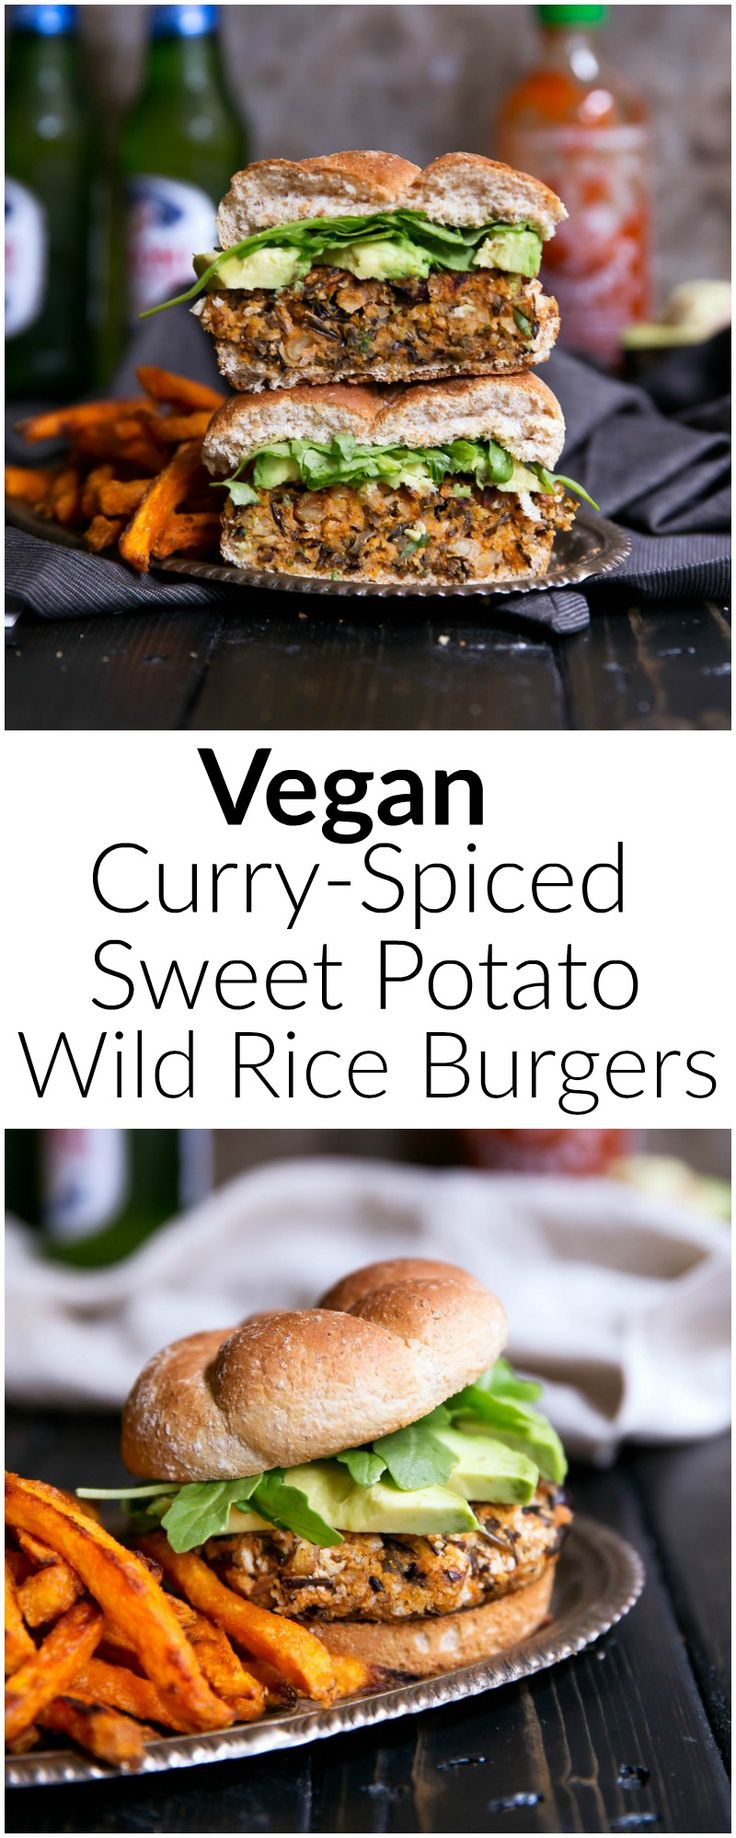 Wild Rice Burgers | Recipe | Wild Rice, Sweet Potato Burgers and Curry ...